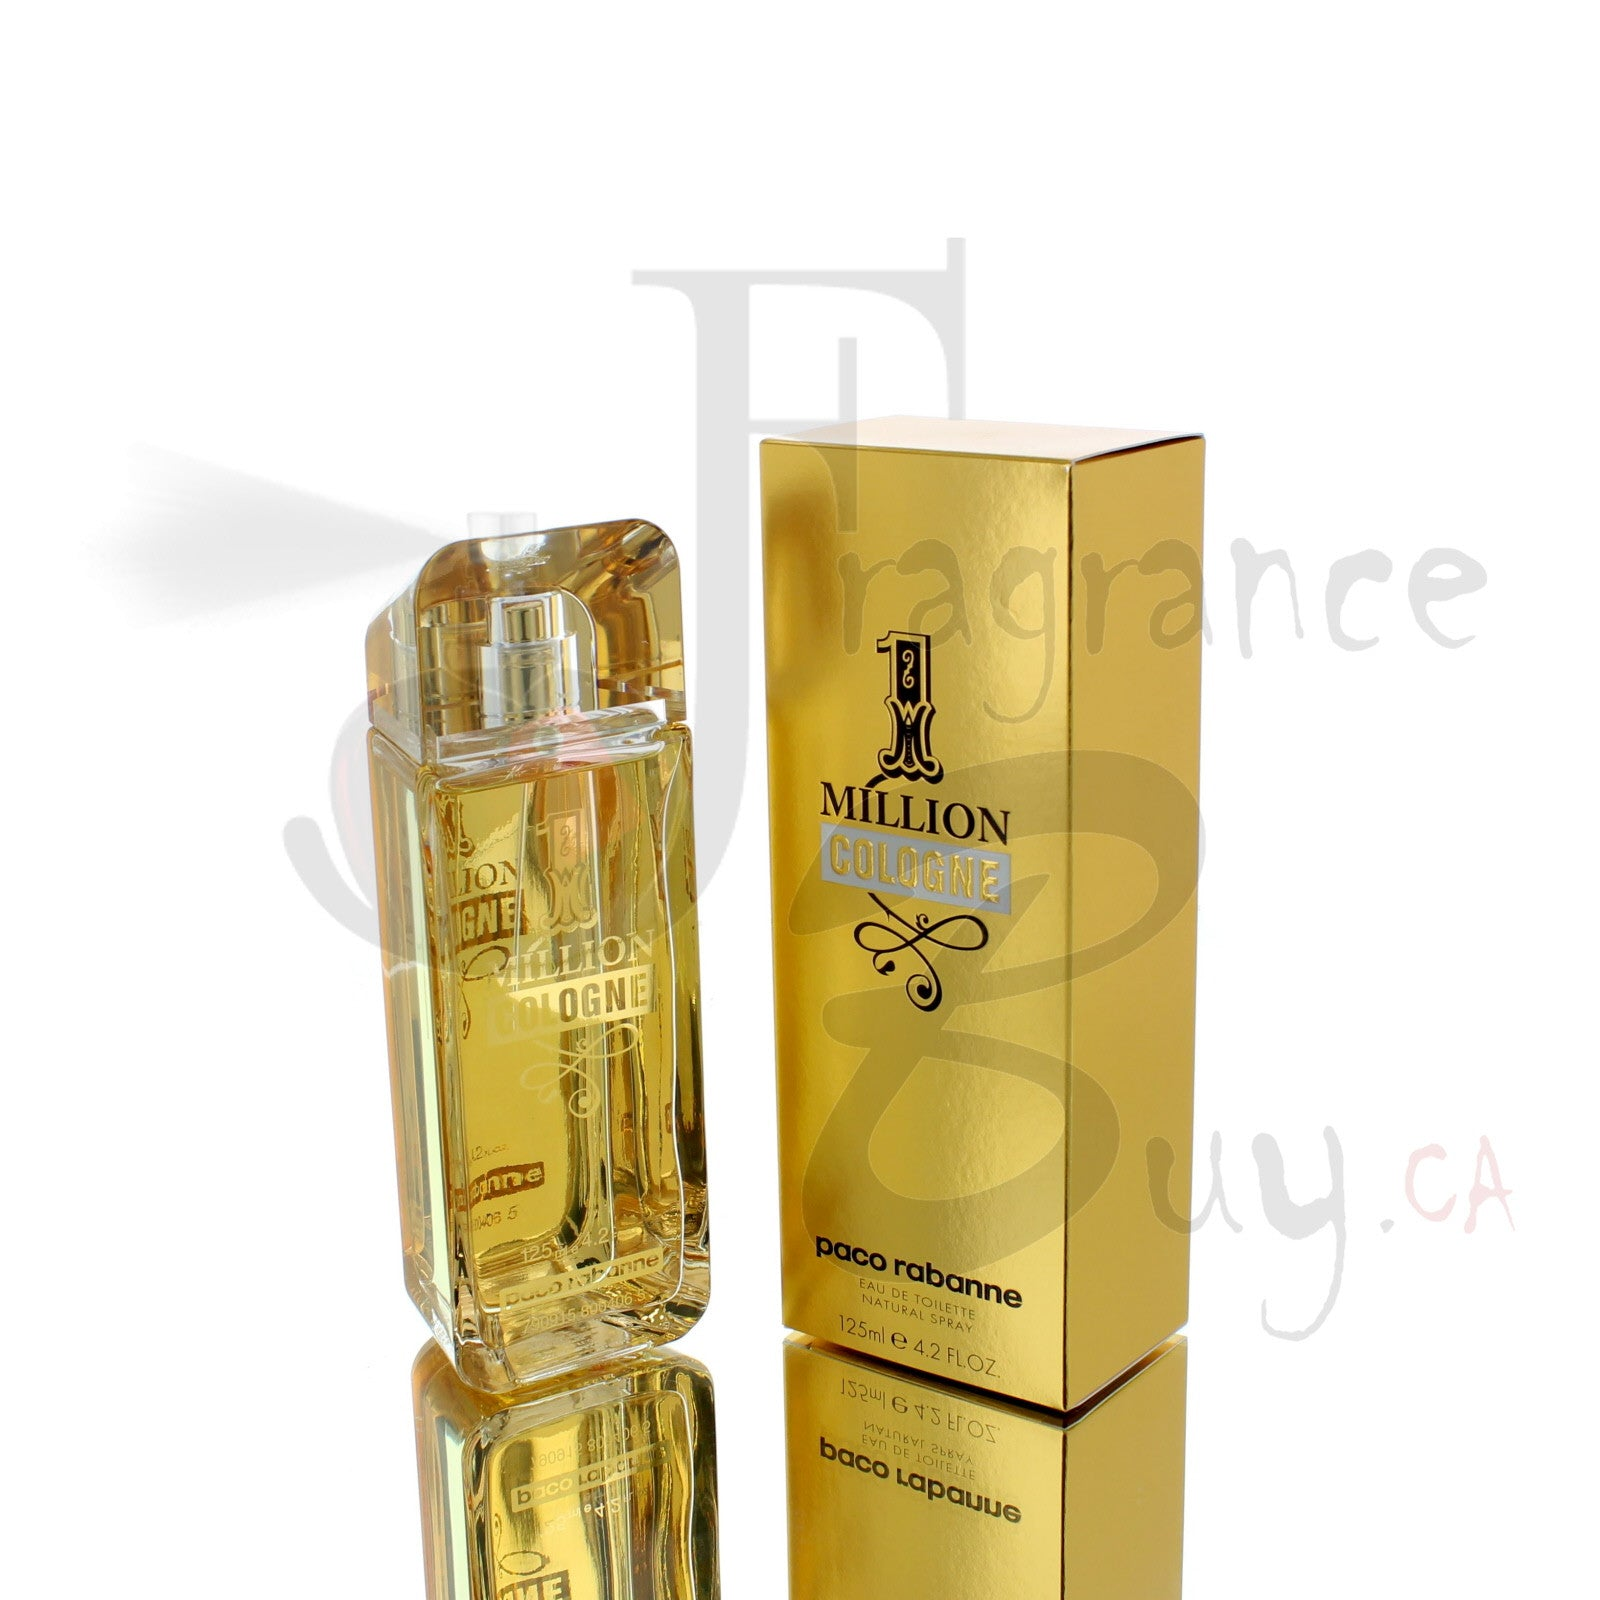 Cologne by Paco Rabanne 1 Million For Man